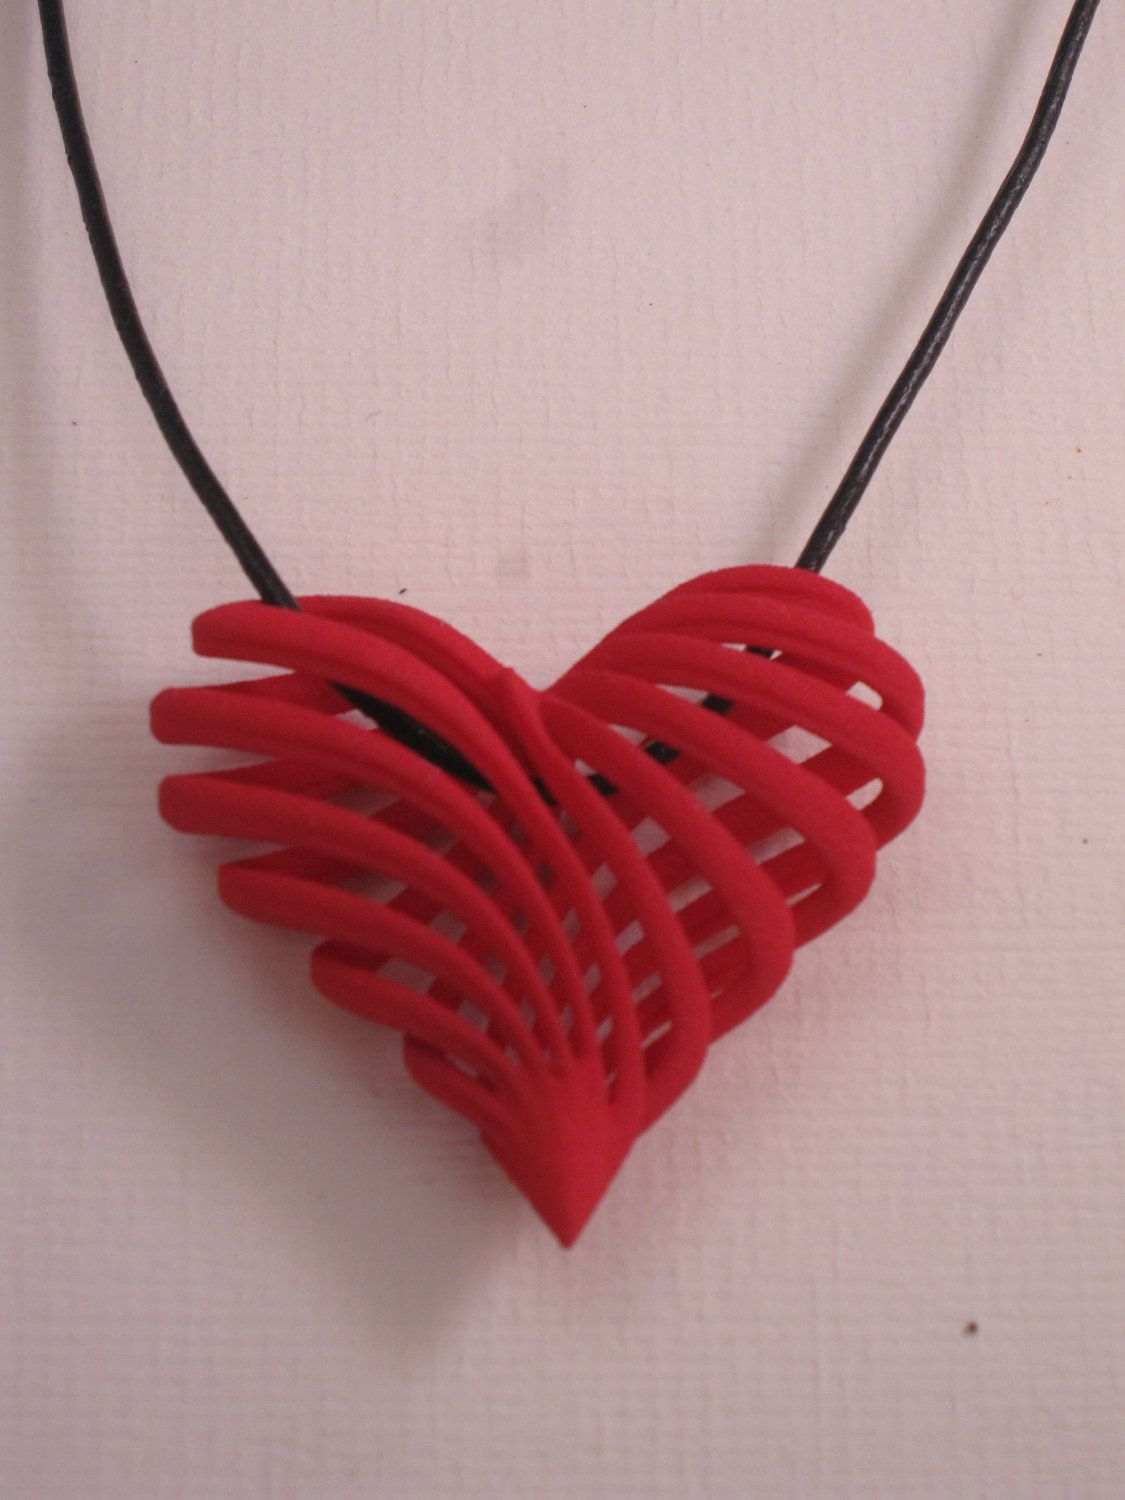 3d printed jewelry Pendant / necklace 'My twisted